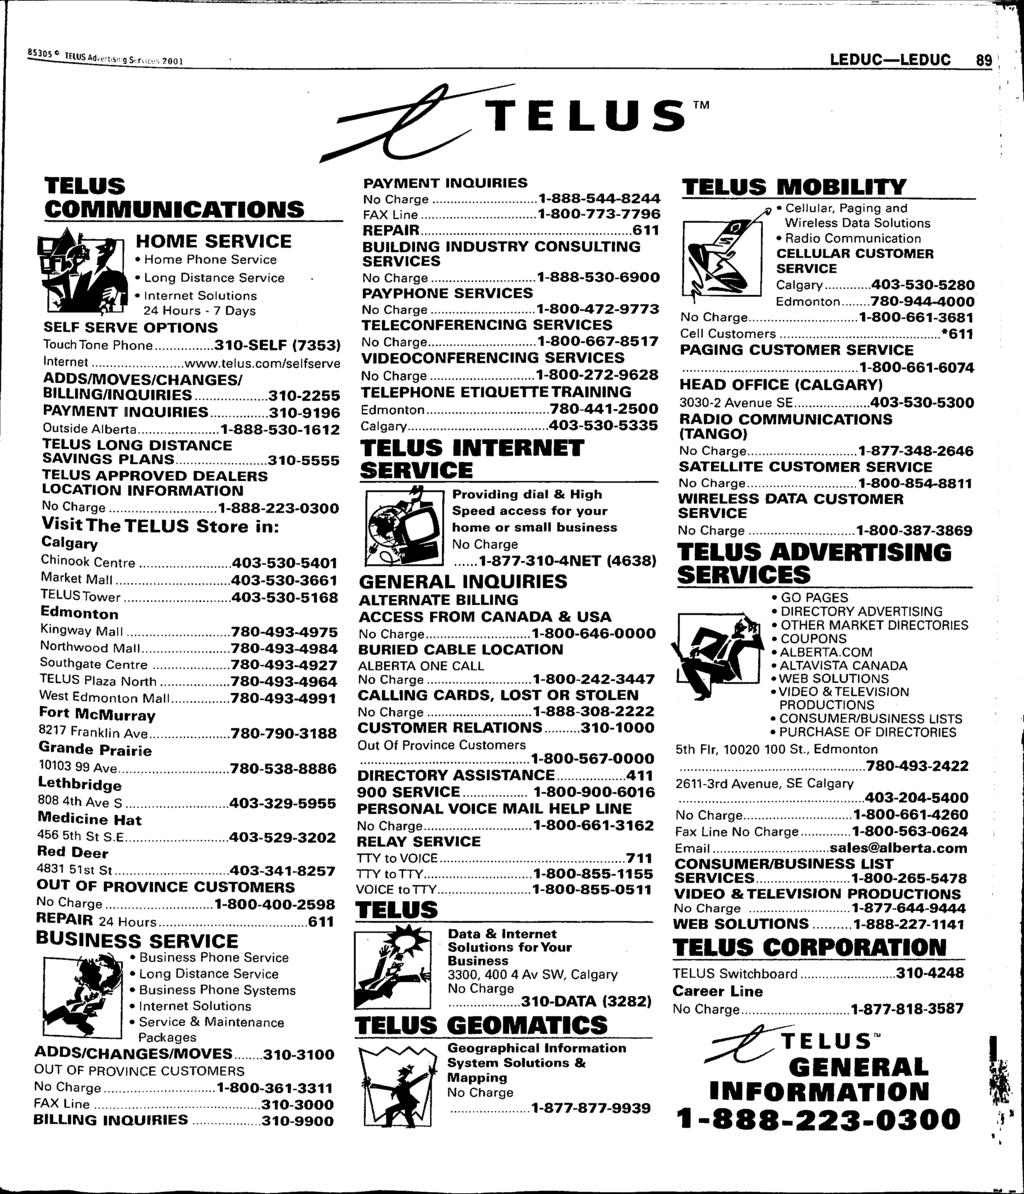 2H l IElUSA(l,e lisii:g 7001 LEDUC LEDUC 89 TELUS TM TELUS COIWIIWIUMICATIOMS HOME SERVICE Home Phone Service Long Distance Service Internet Solutions 24 Hours - 7 Days SELF SERVE OPTIONS Touch Tone